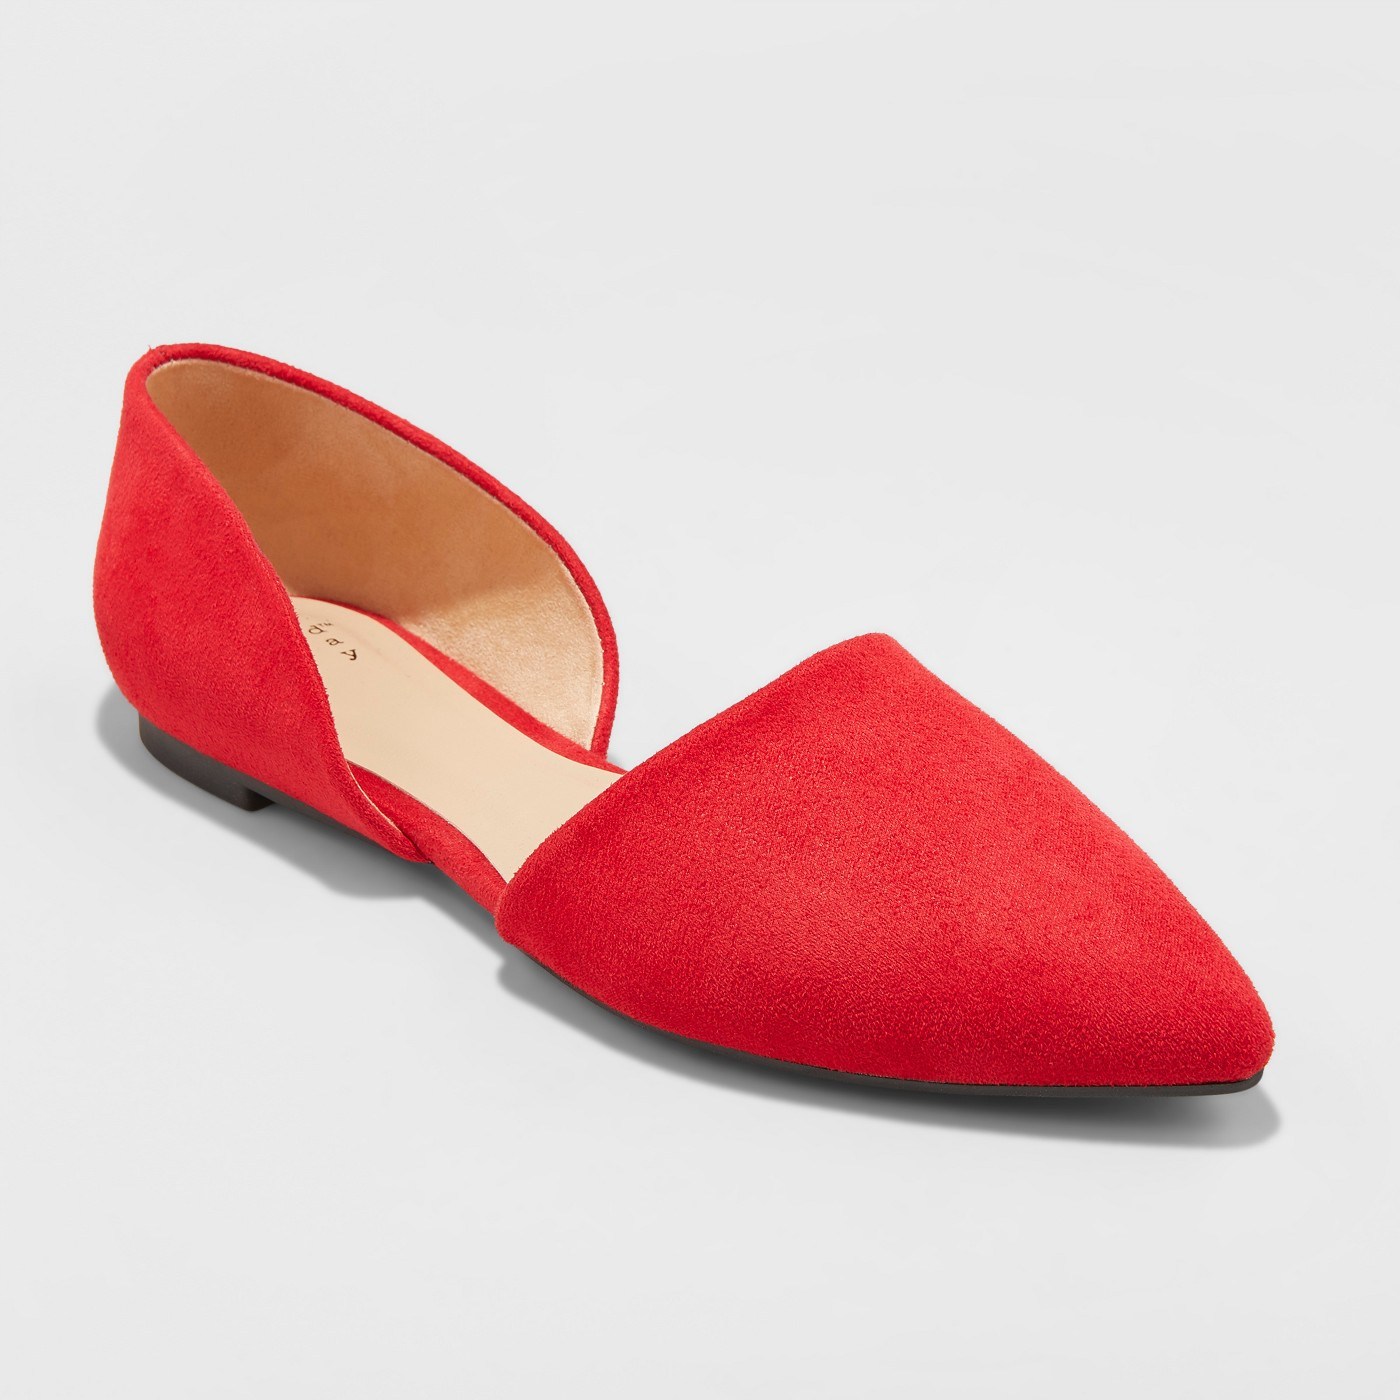 A New Day Rebecca Microsuede Pointed Two Piece Ballet Flats, $19.99